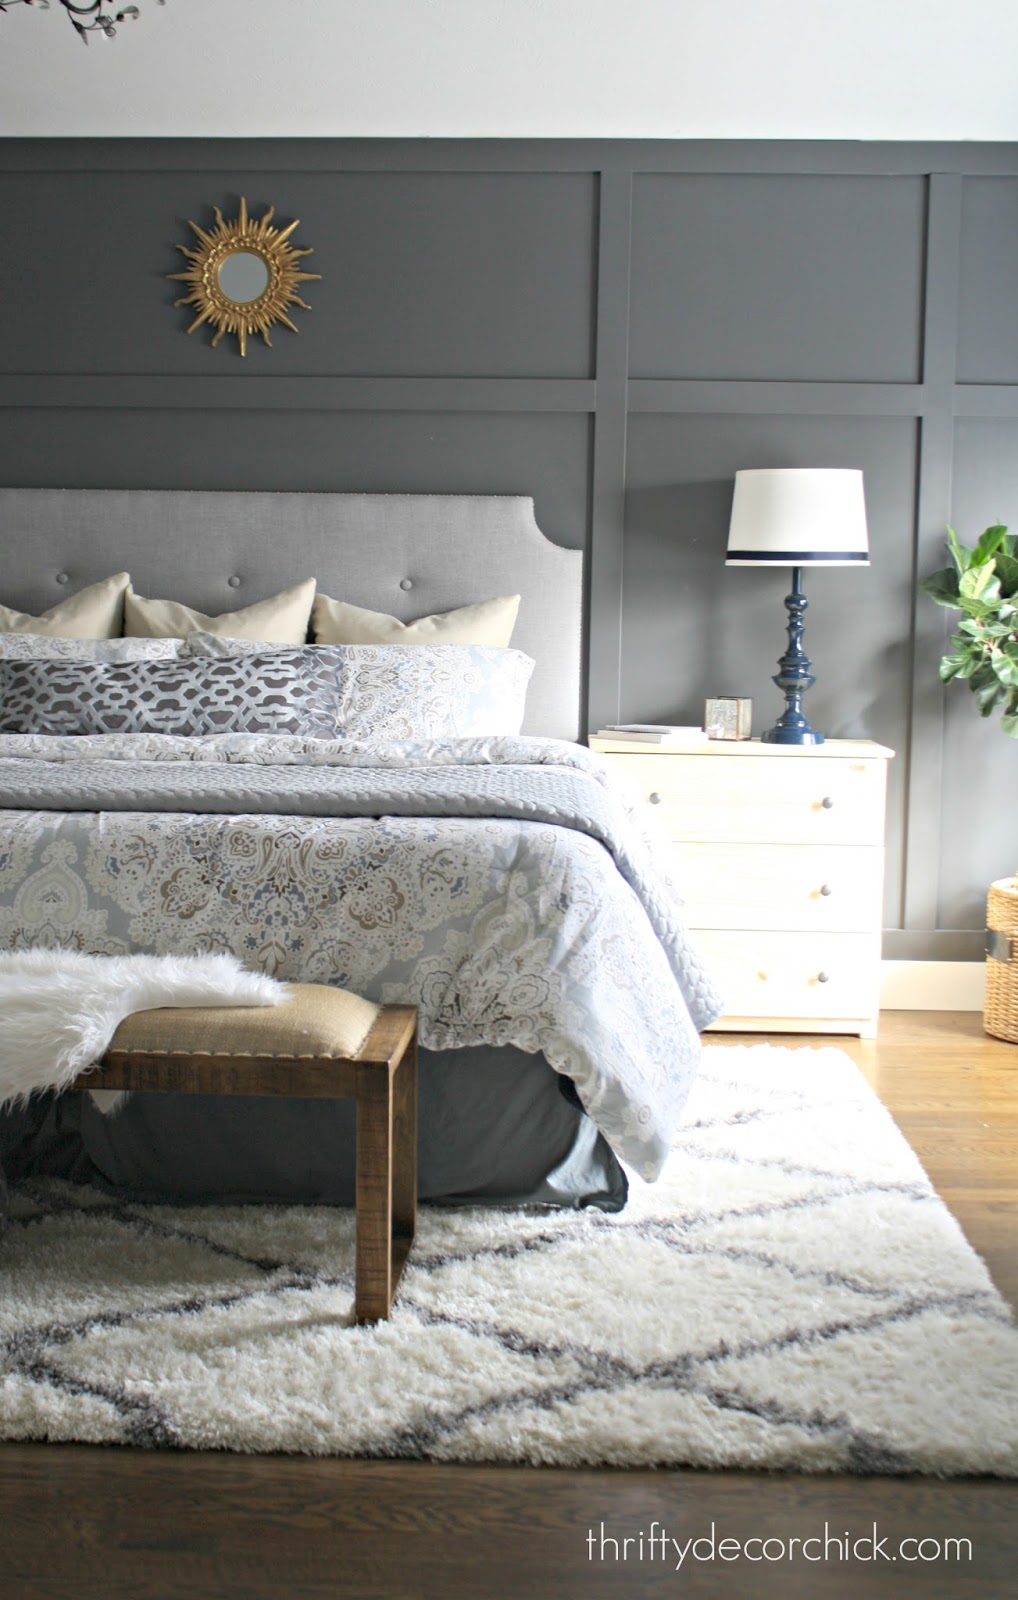 How To Make A Diy Tufted Headboard From Thrifty Decor Chick